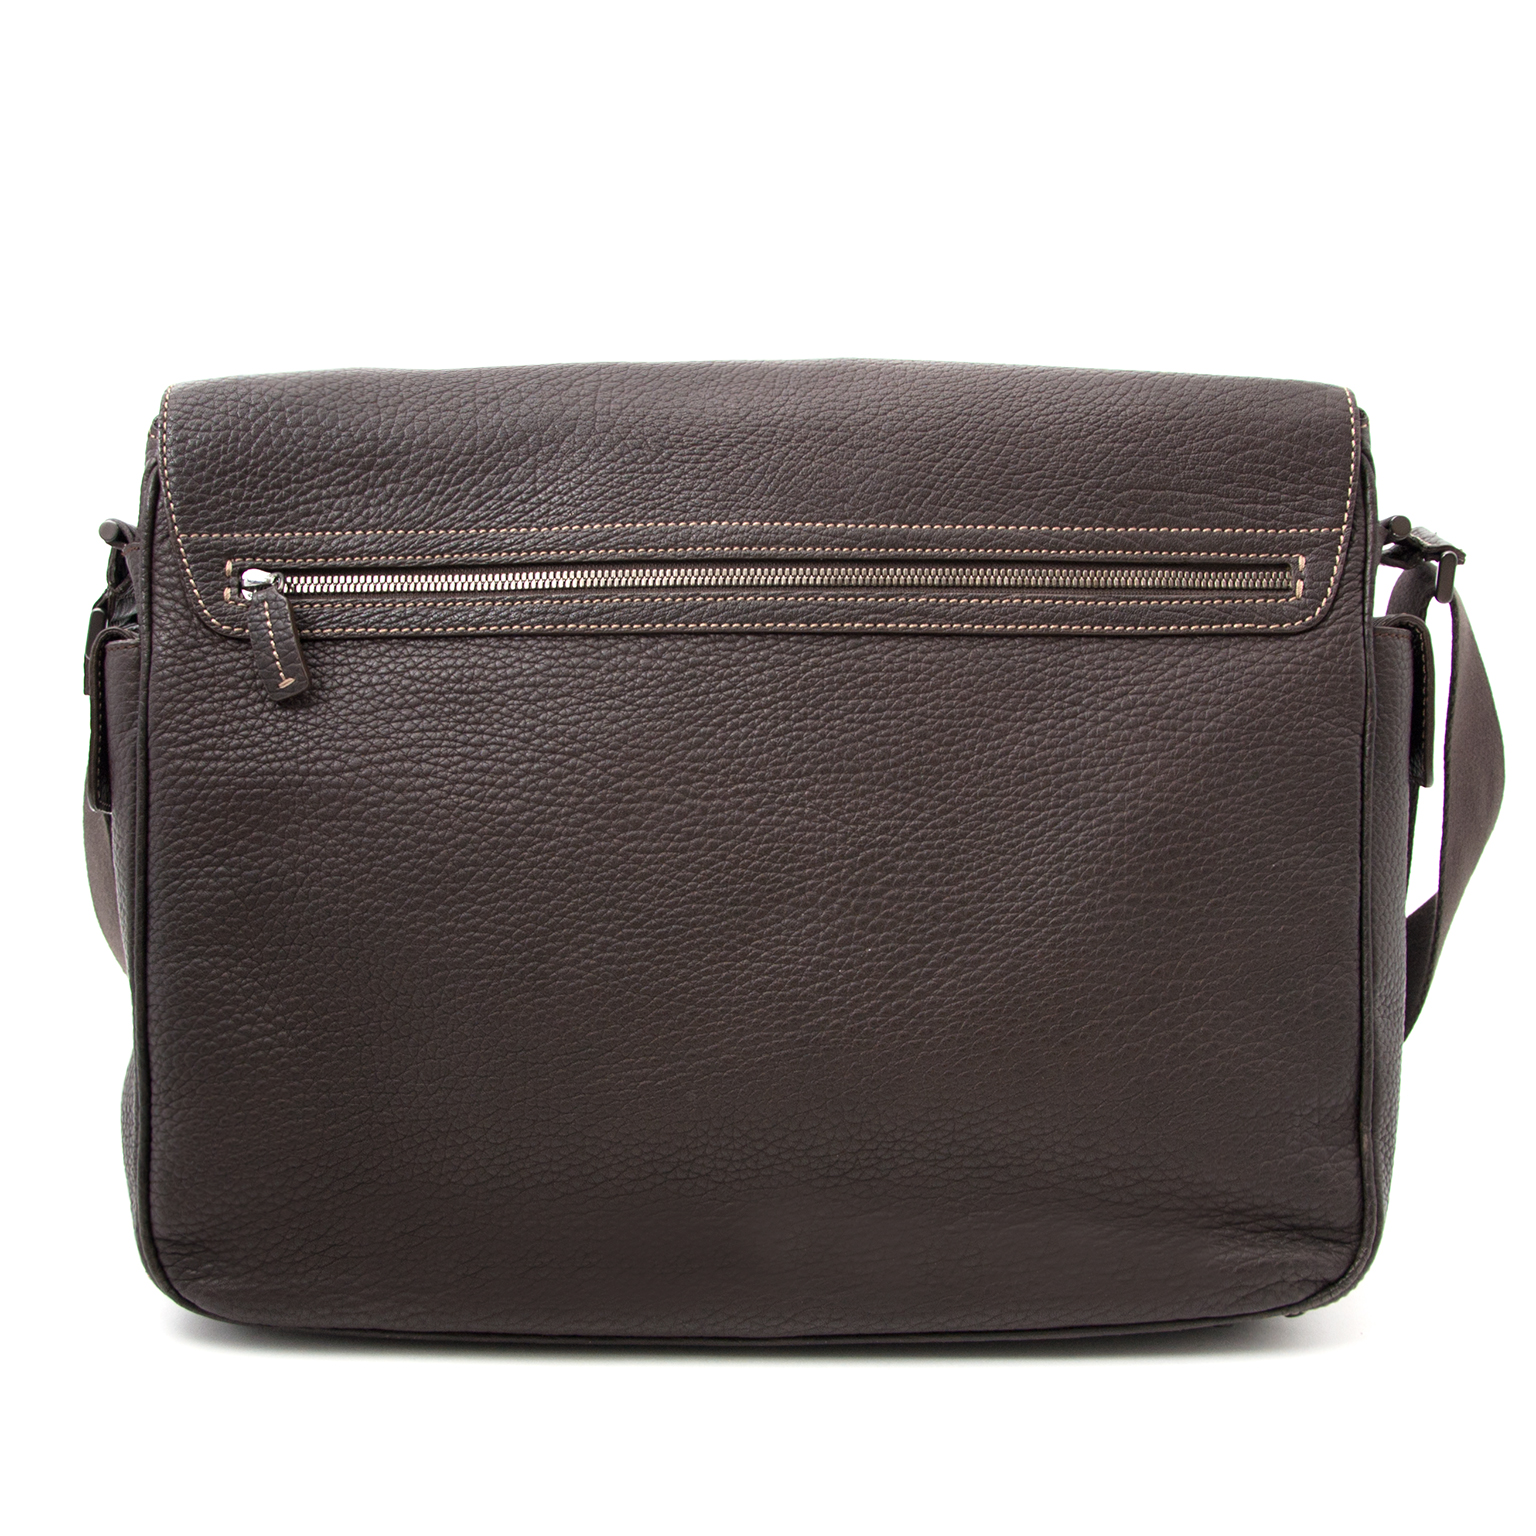 Are you looking for an authentic Tod's Brown Leather Messenger Bag? Shop safe at Labellov.